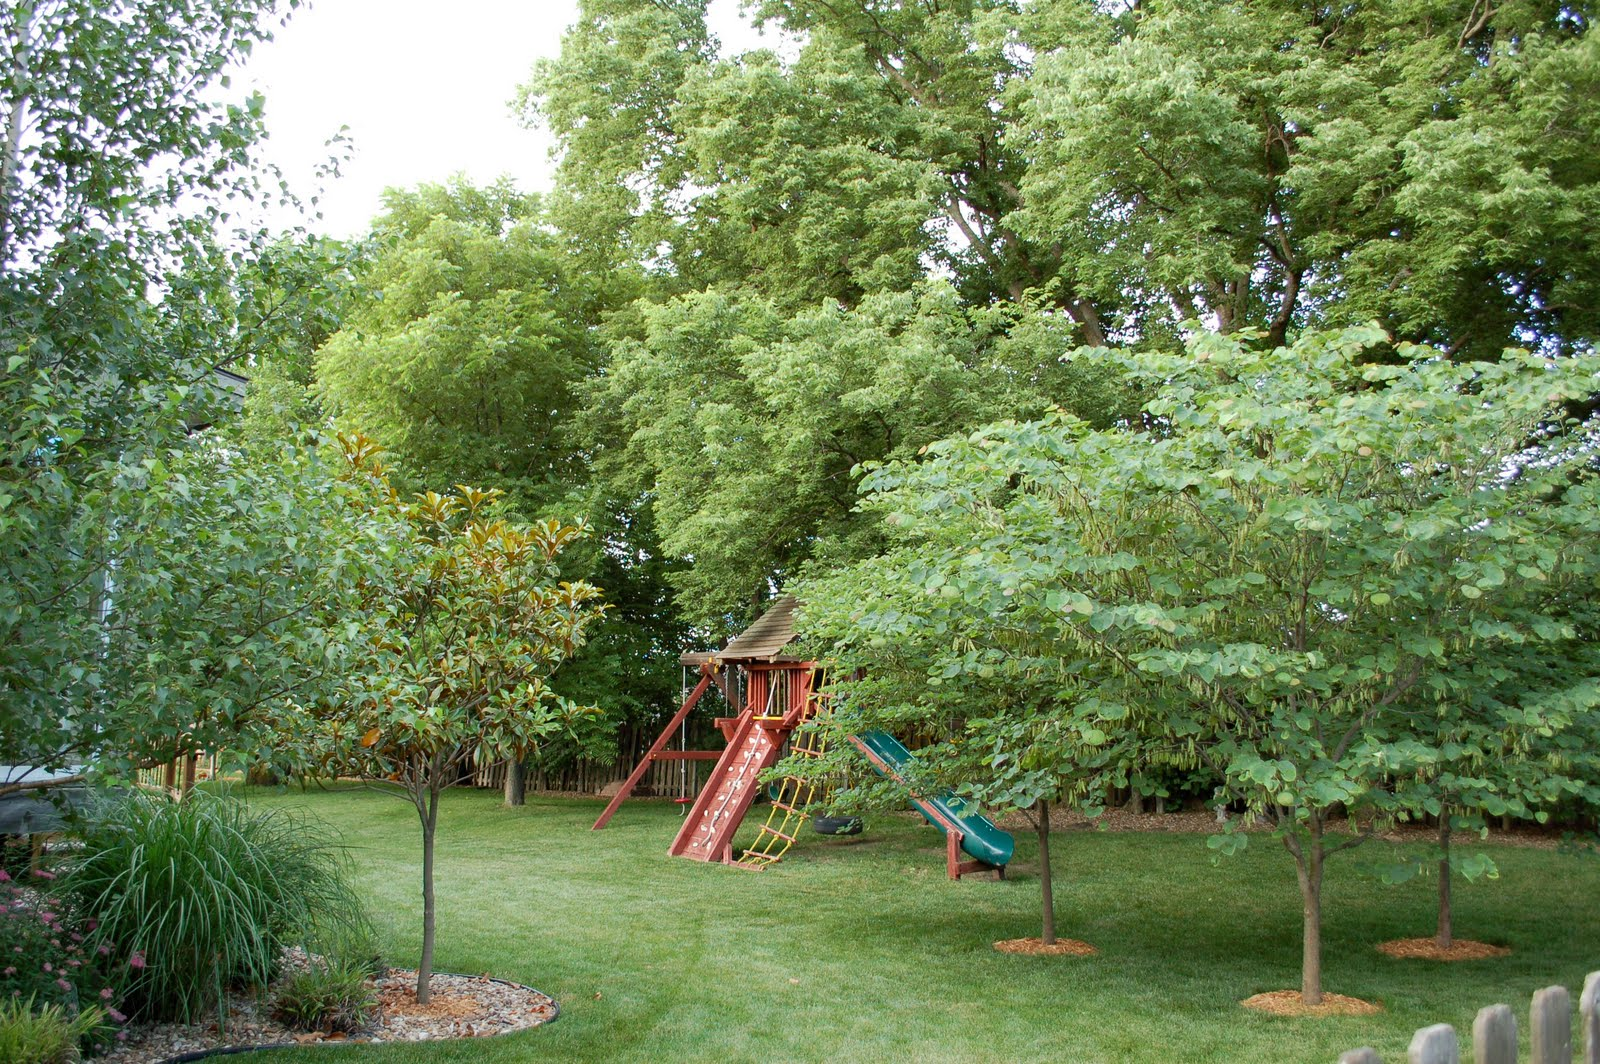 Backyard Trees For Privacy : The awesome back yardI loved those trees and privacy